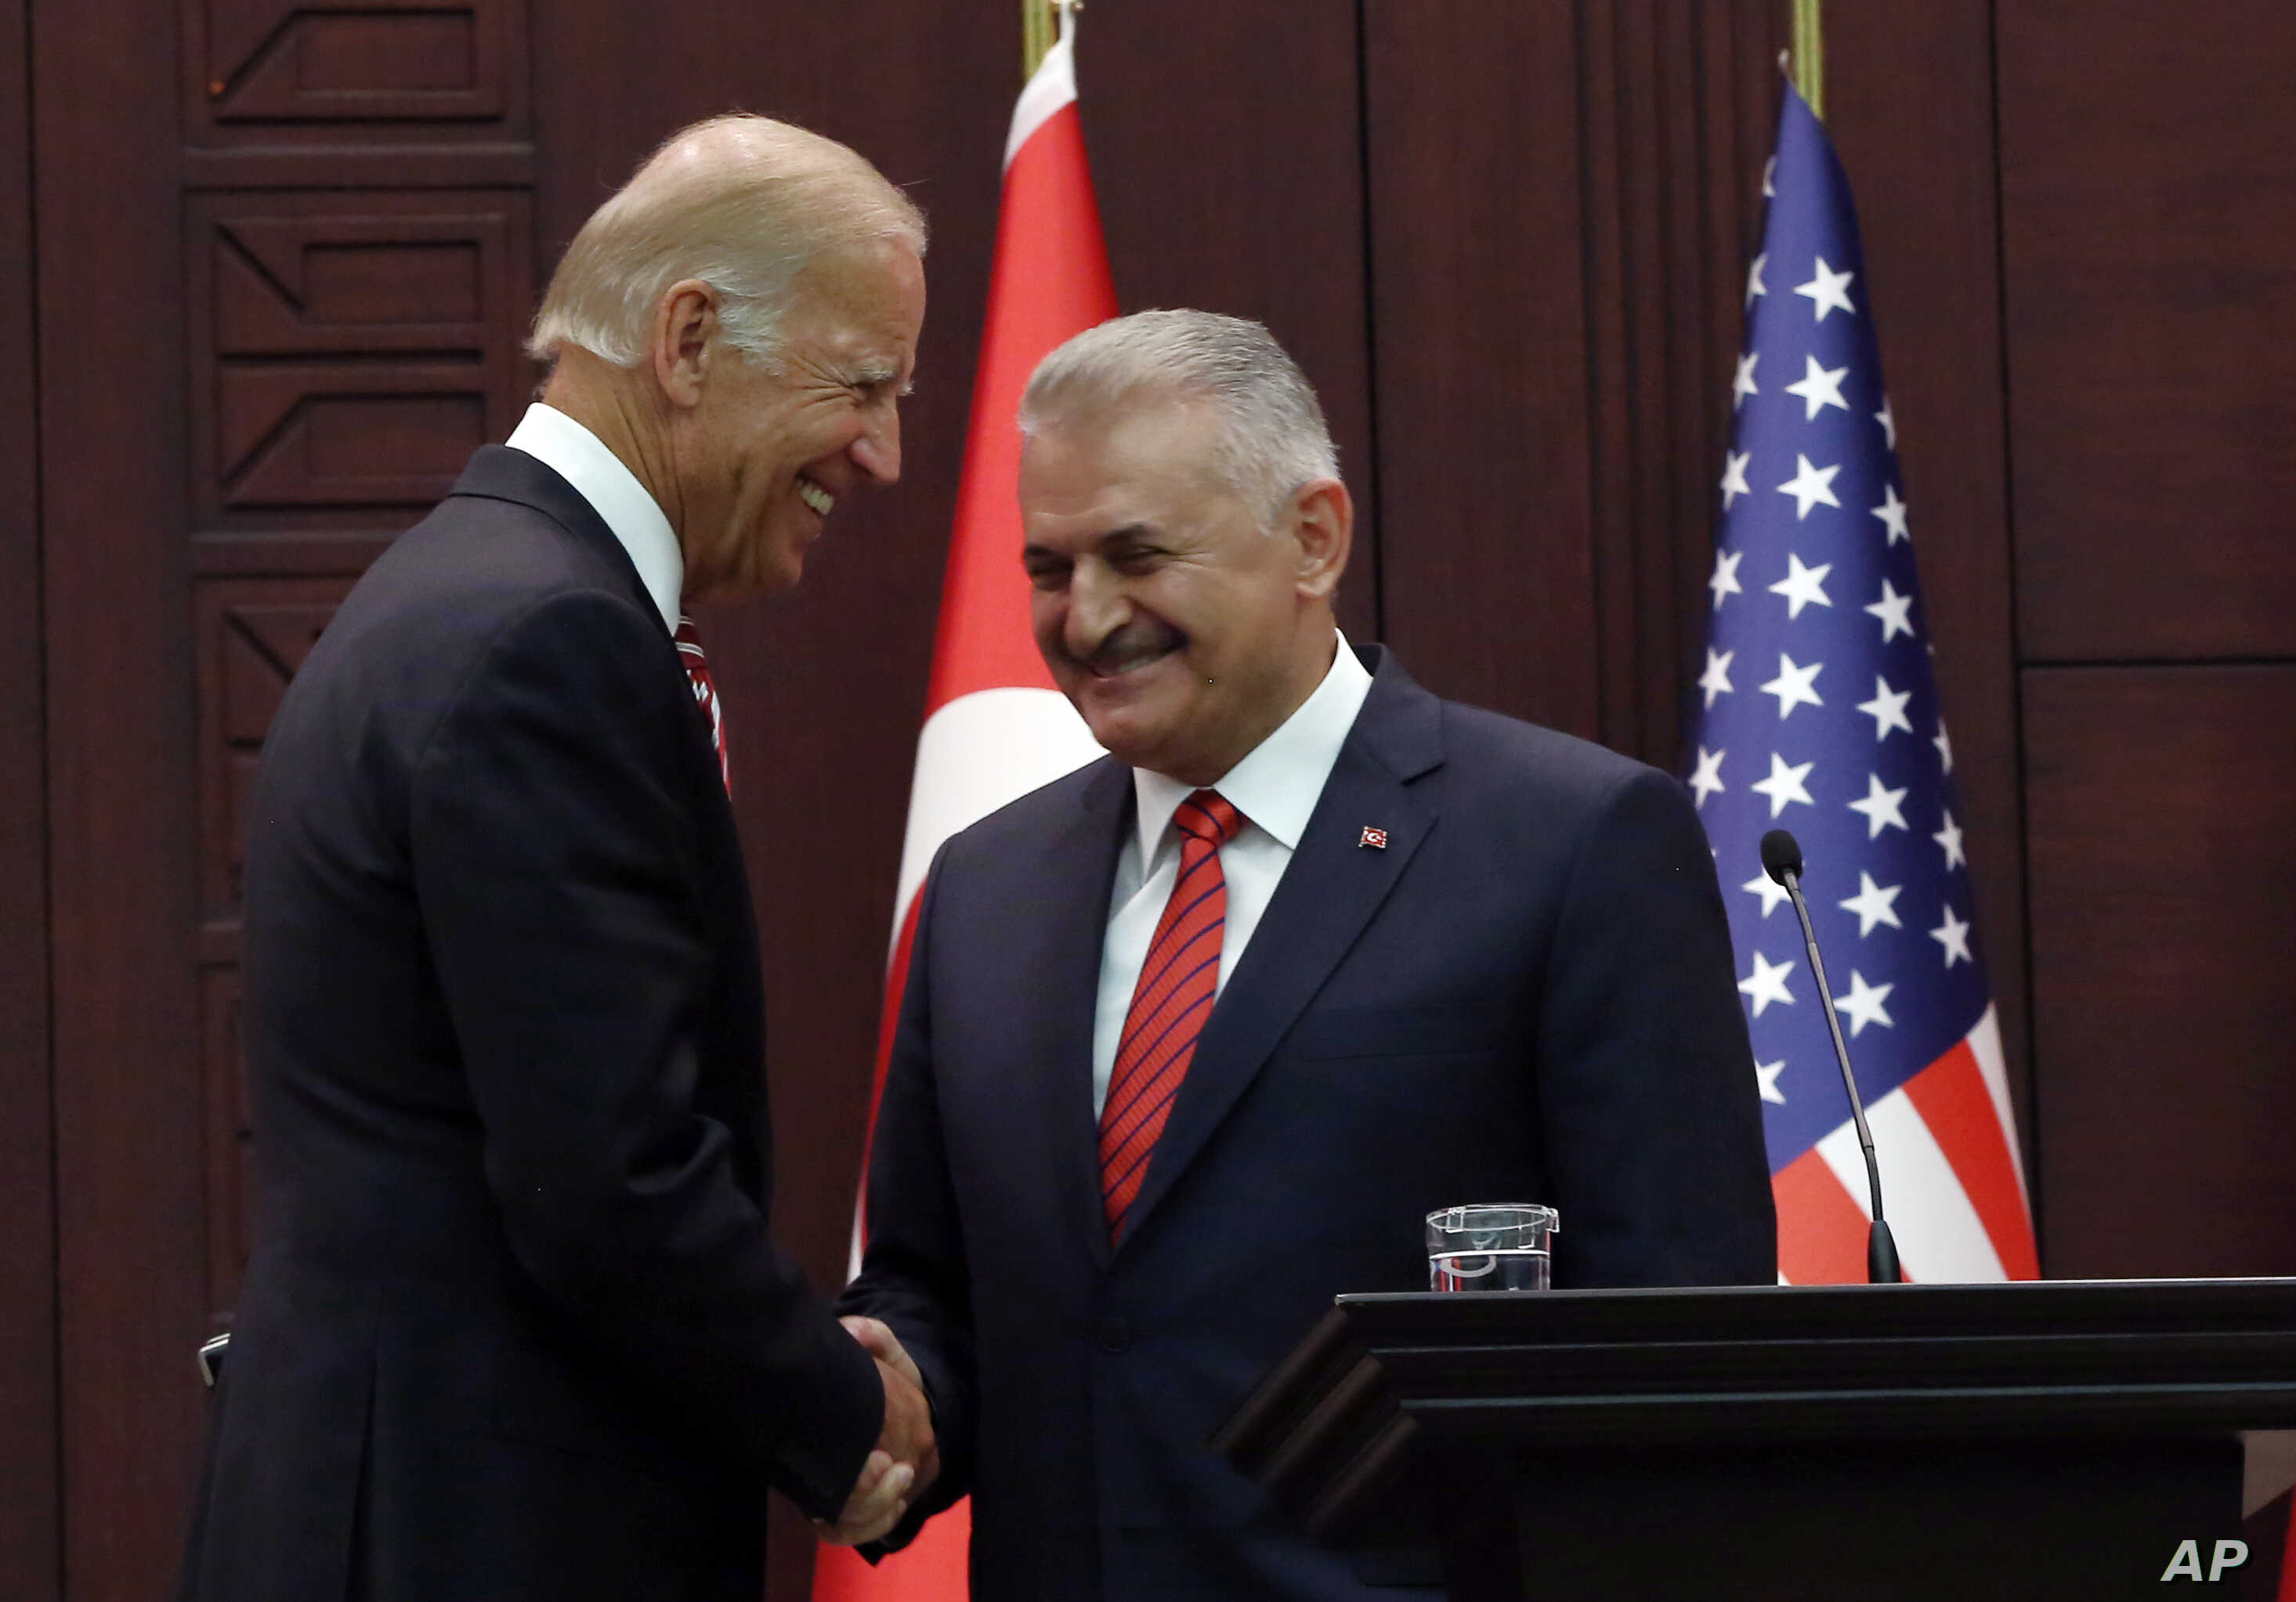 U. S. Vice President Joe Biden, left, and Turkish Prime Minister Binali Yildirim shake hands after a joint news conference in Ankara, Turkey, Aug. 24, 2016.